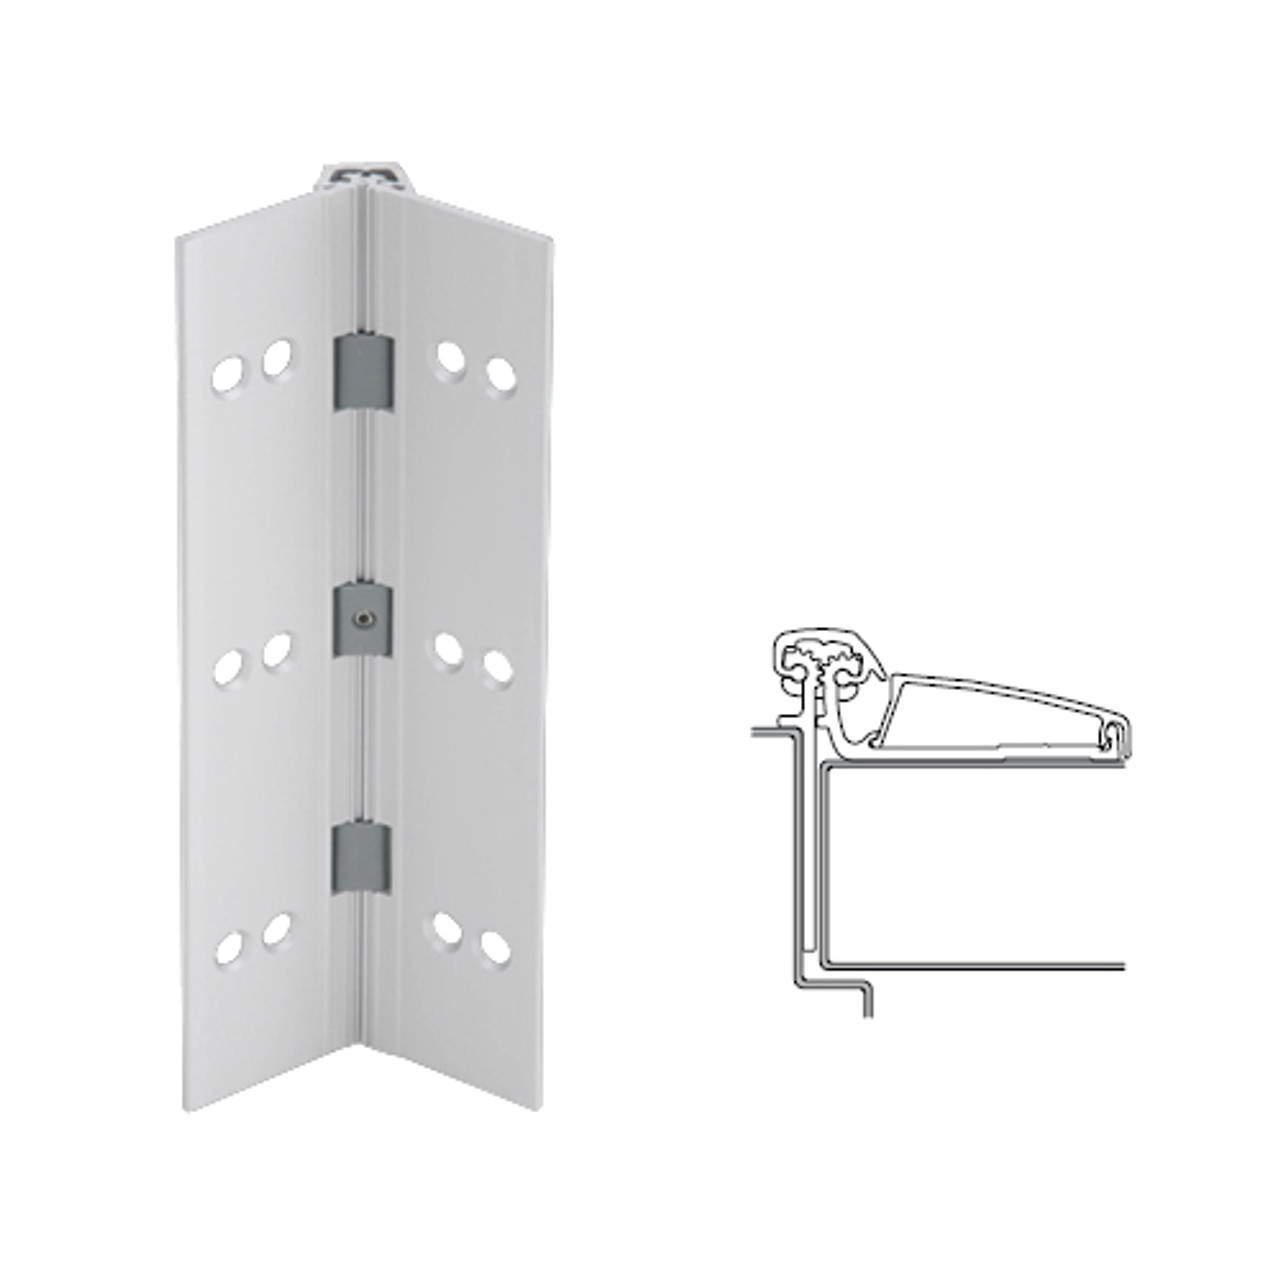 046XY-US28-83-SECWDWD IVES Adjustable Half Surface Continuous Geared Hinges with Security Screws - Hex Pin Drive in Satin Aluminum